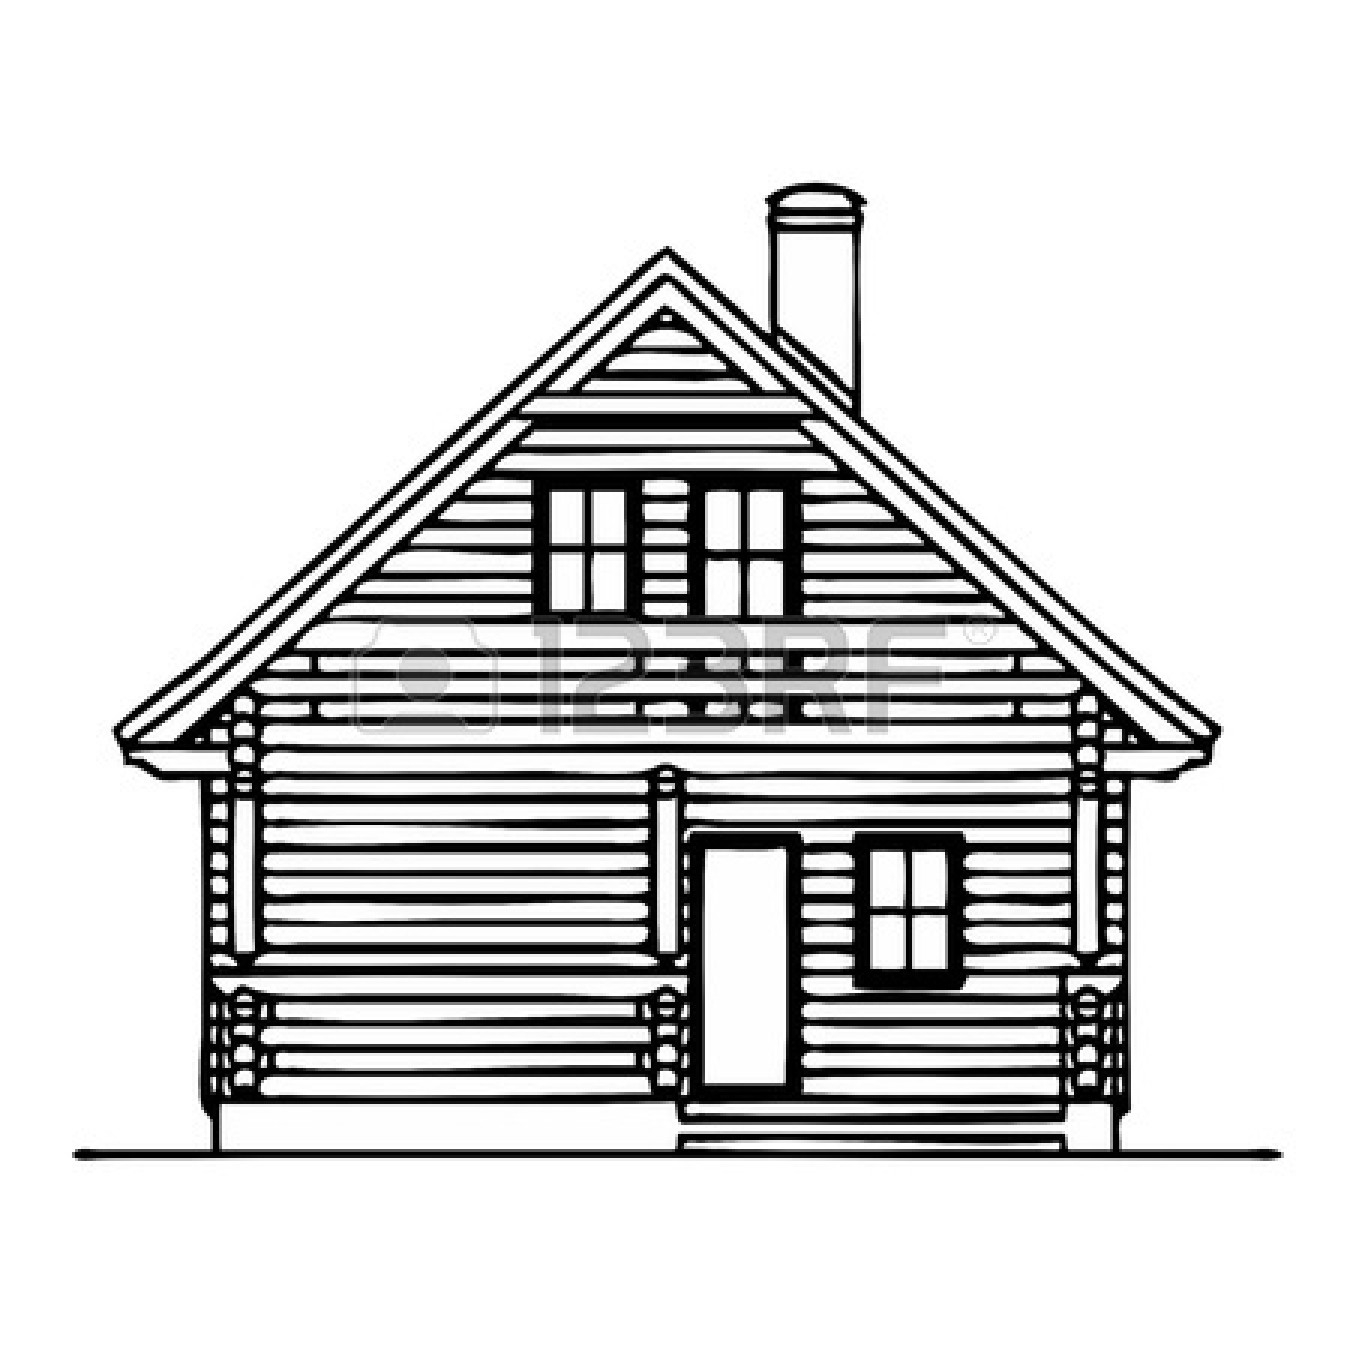 coloring pages of cabins 26 coloring pages of log cabins collection coloring sheets pages coloring of cabins